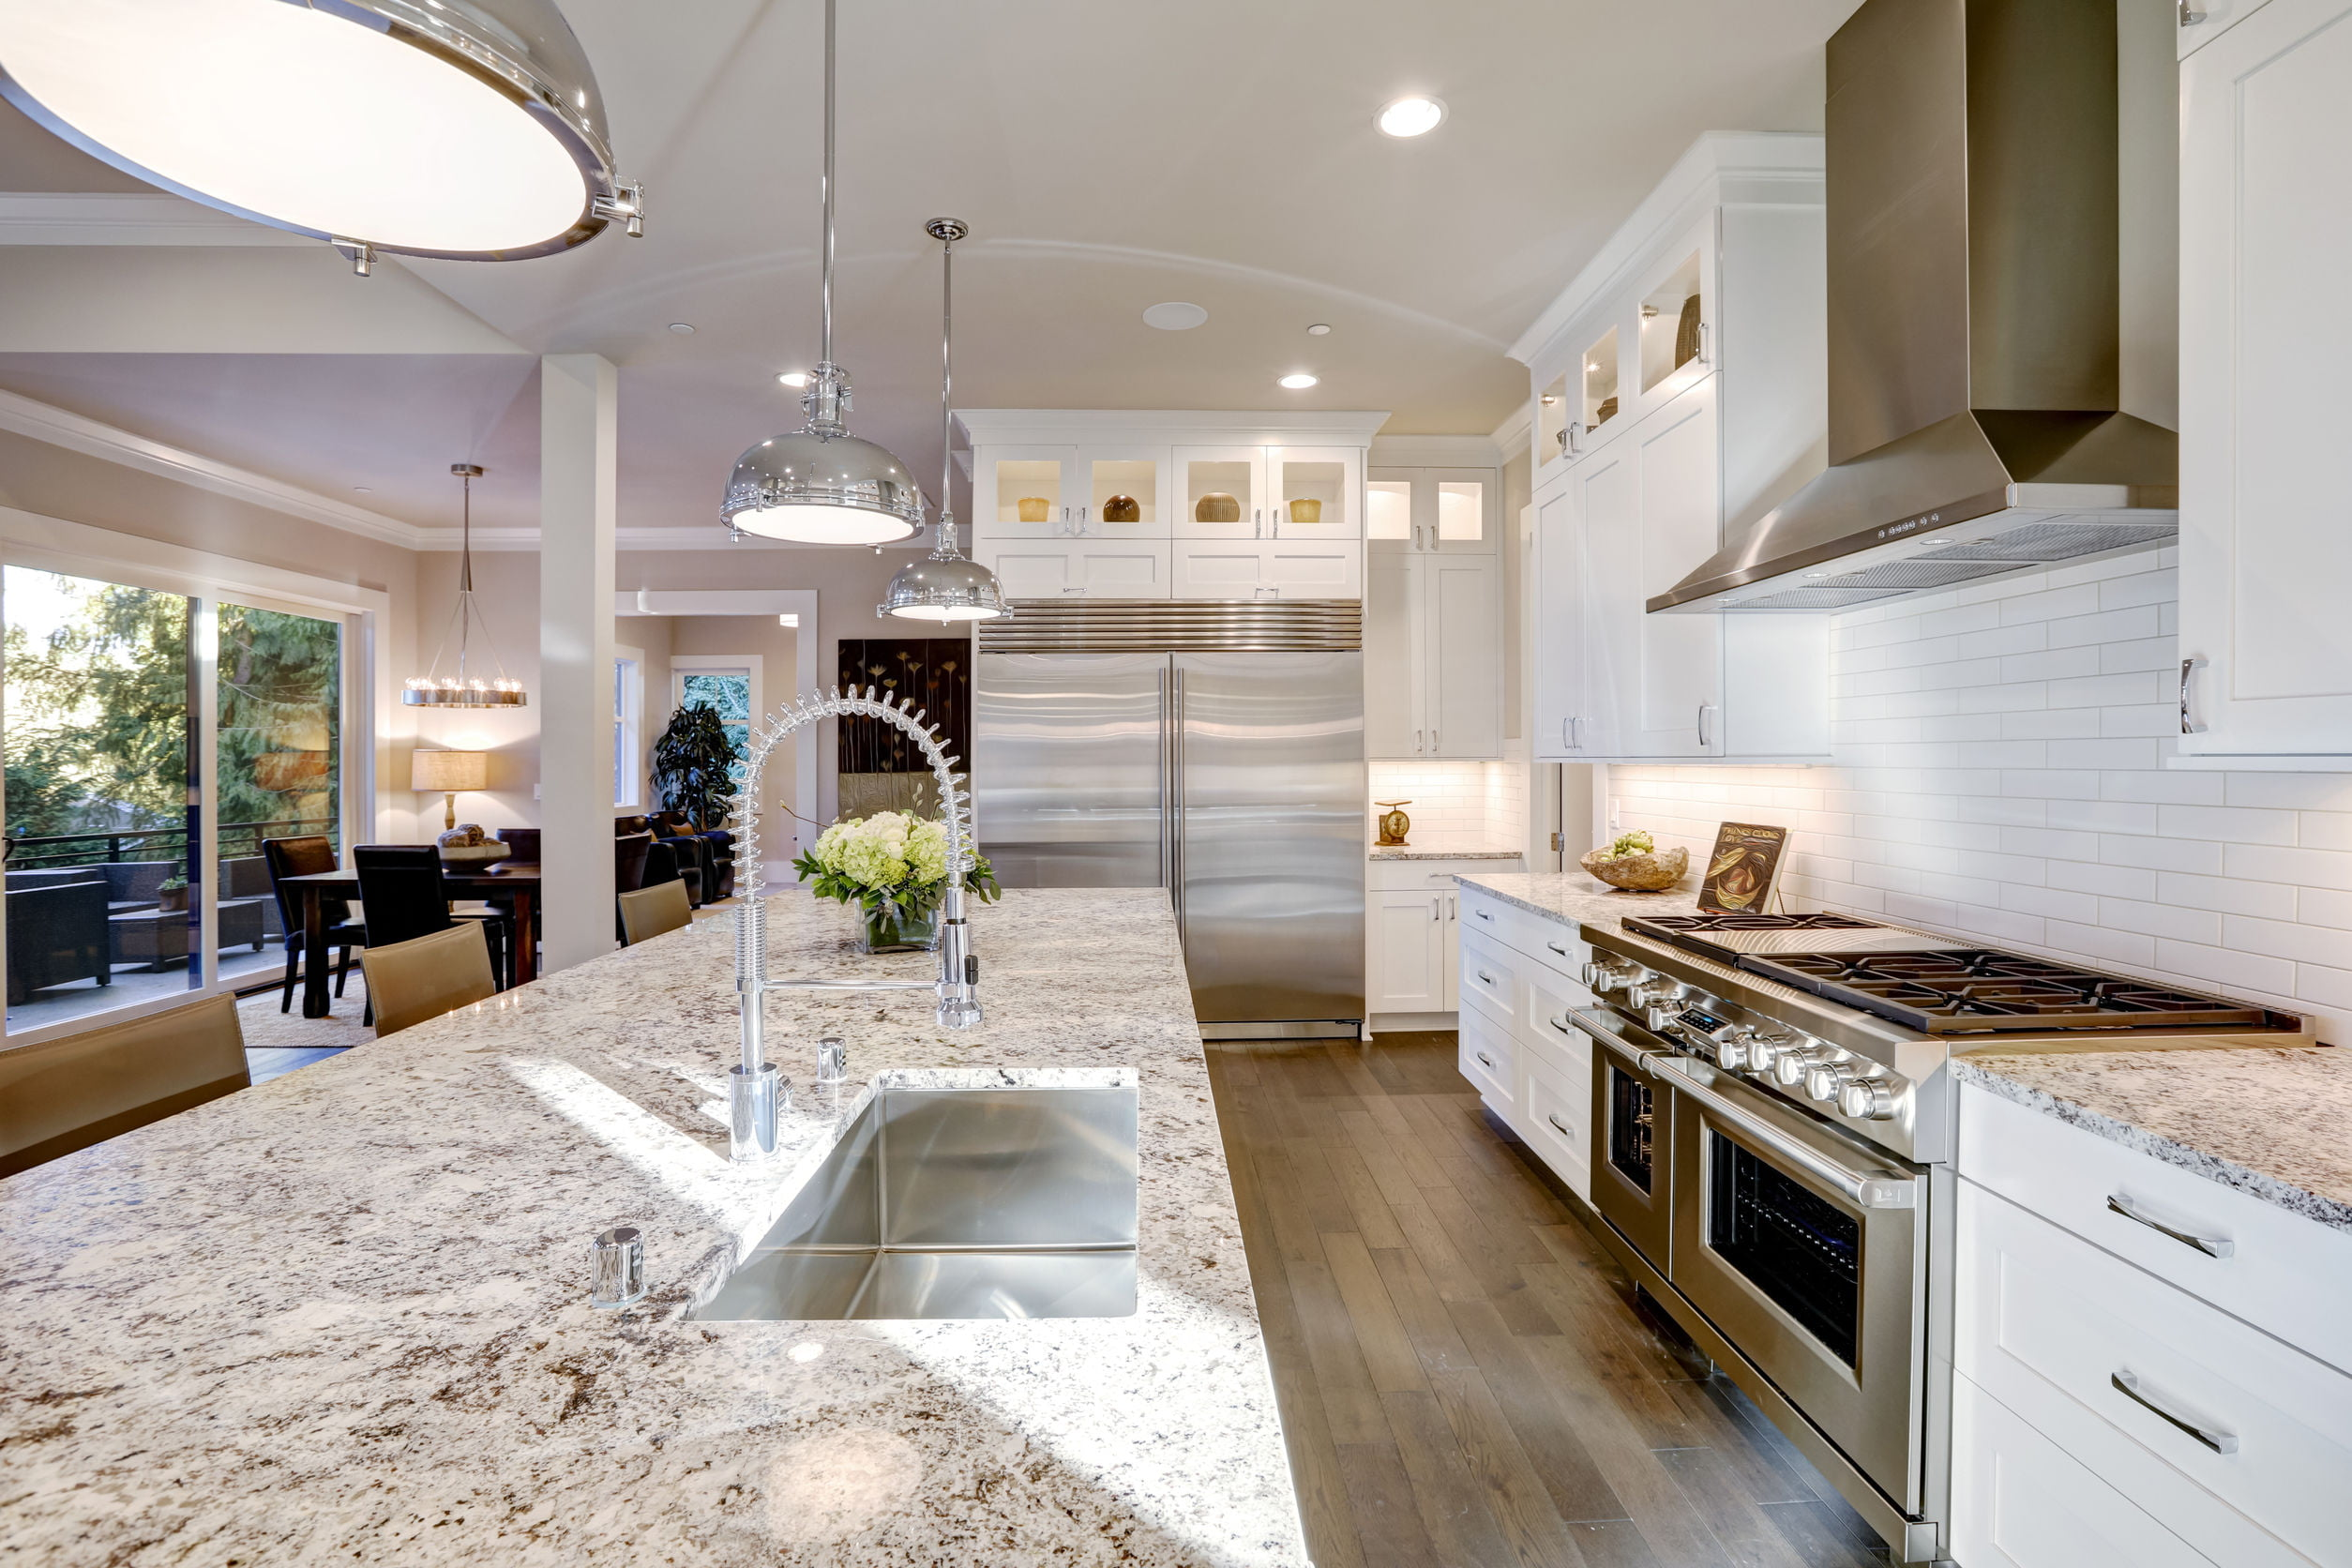 3 Countertops Louisville KY Services